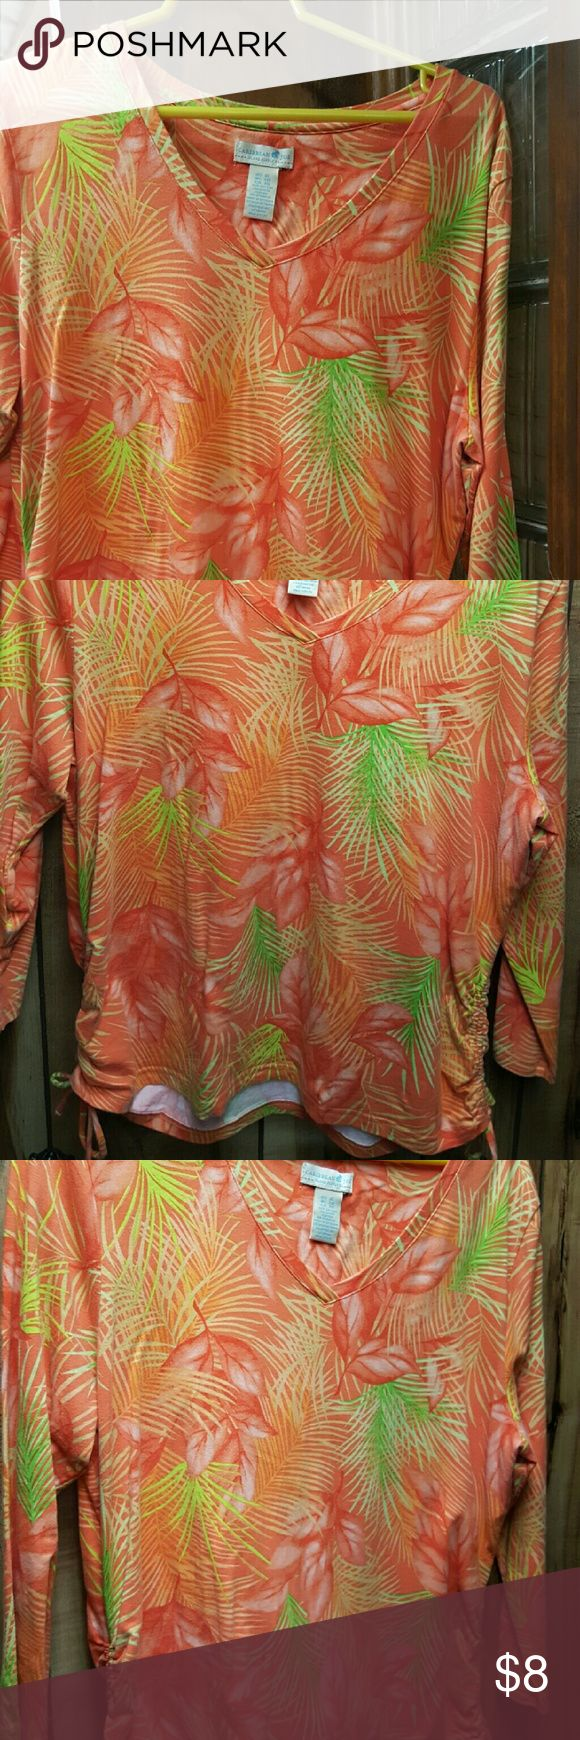 Caribbean Joe Shirt Tropical shirt, side tie cinching, worn only a few times, 95% cotton, 5% spandex. Caribbean Joe Tops